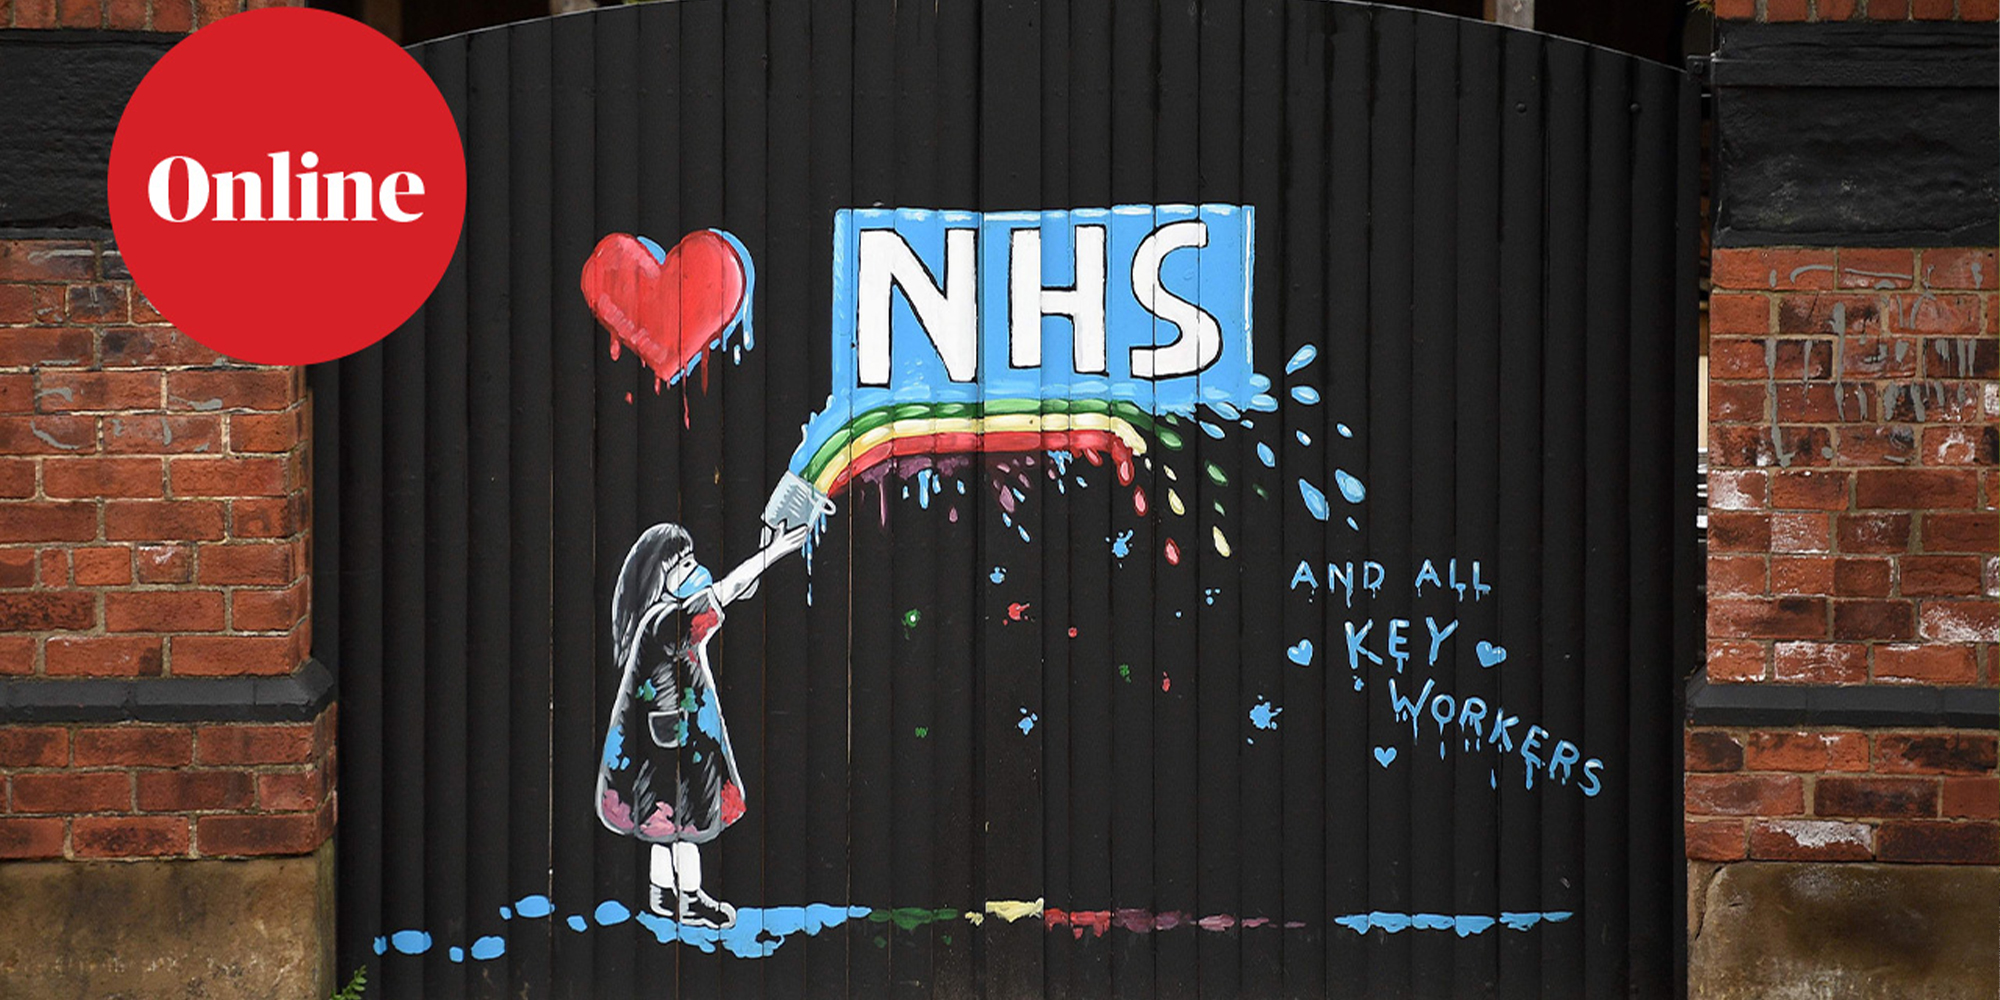 Guardian Live: How can we protect the future of the NHS?